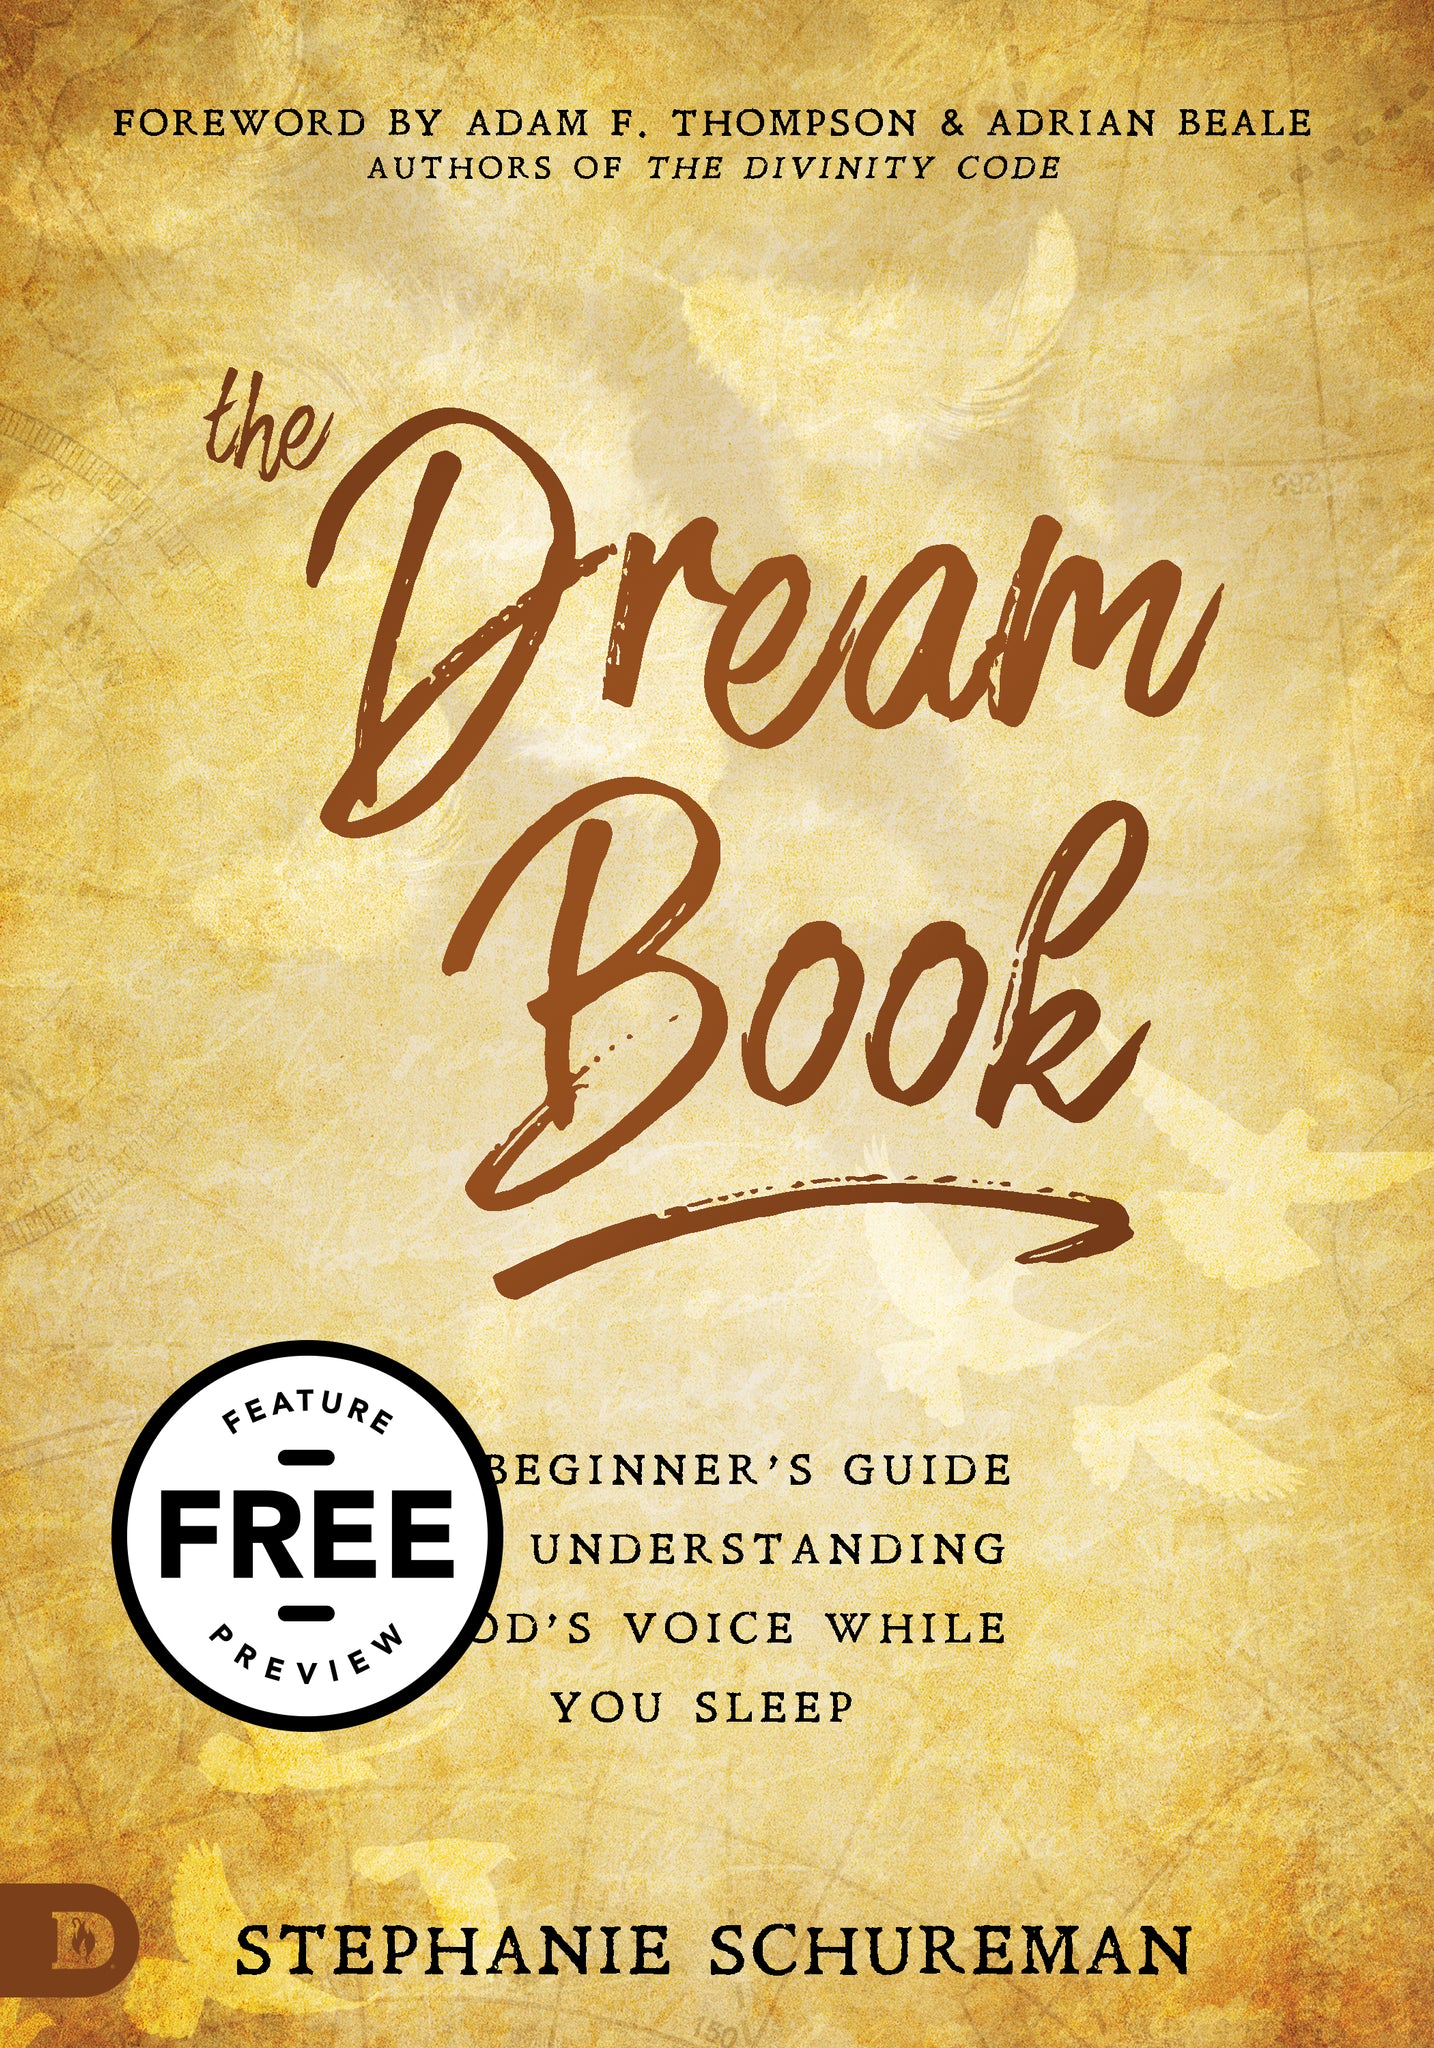 The Dream Book: A Beginner's Guide to Understanding God's Voice While You Sleep Free Feature Message (PDF Download)